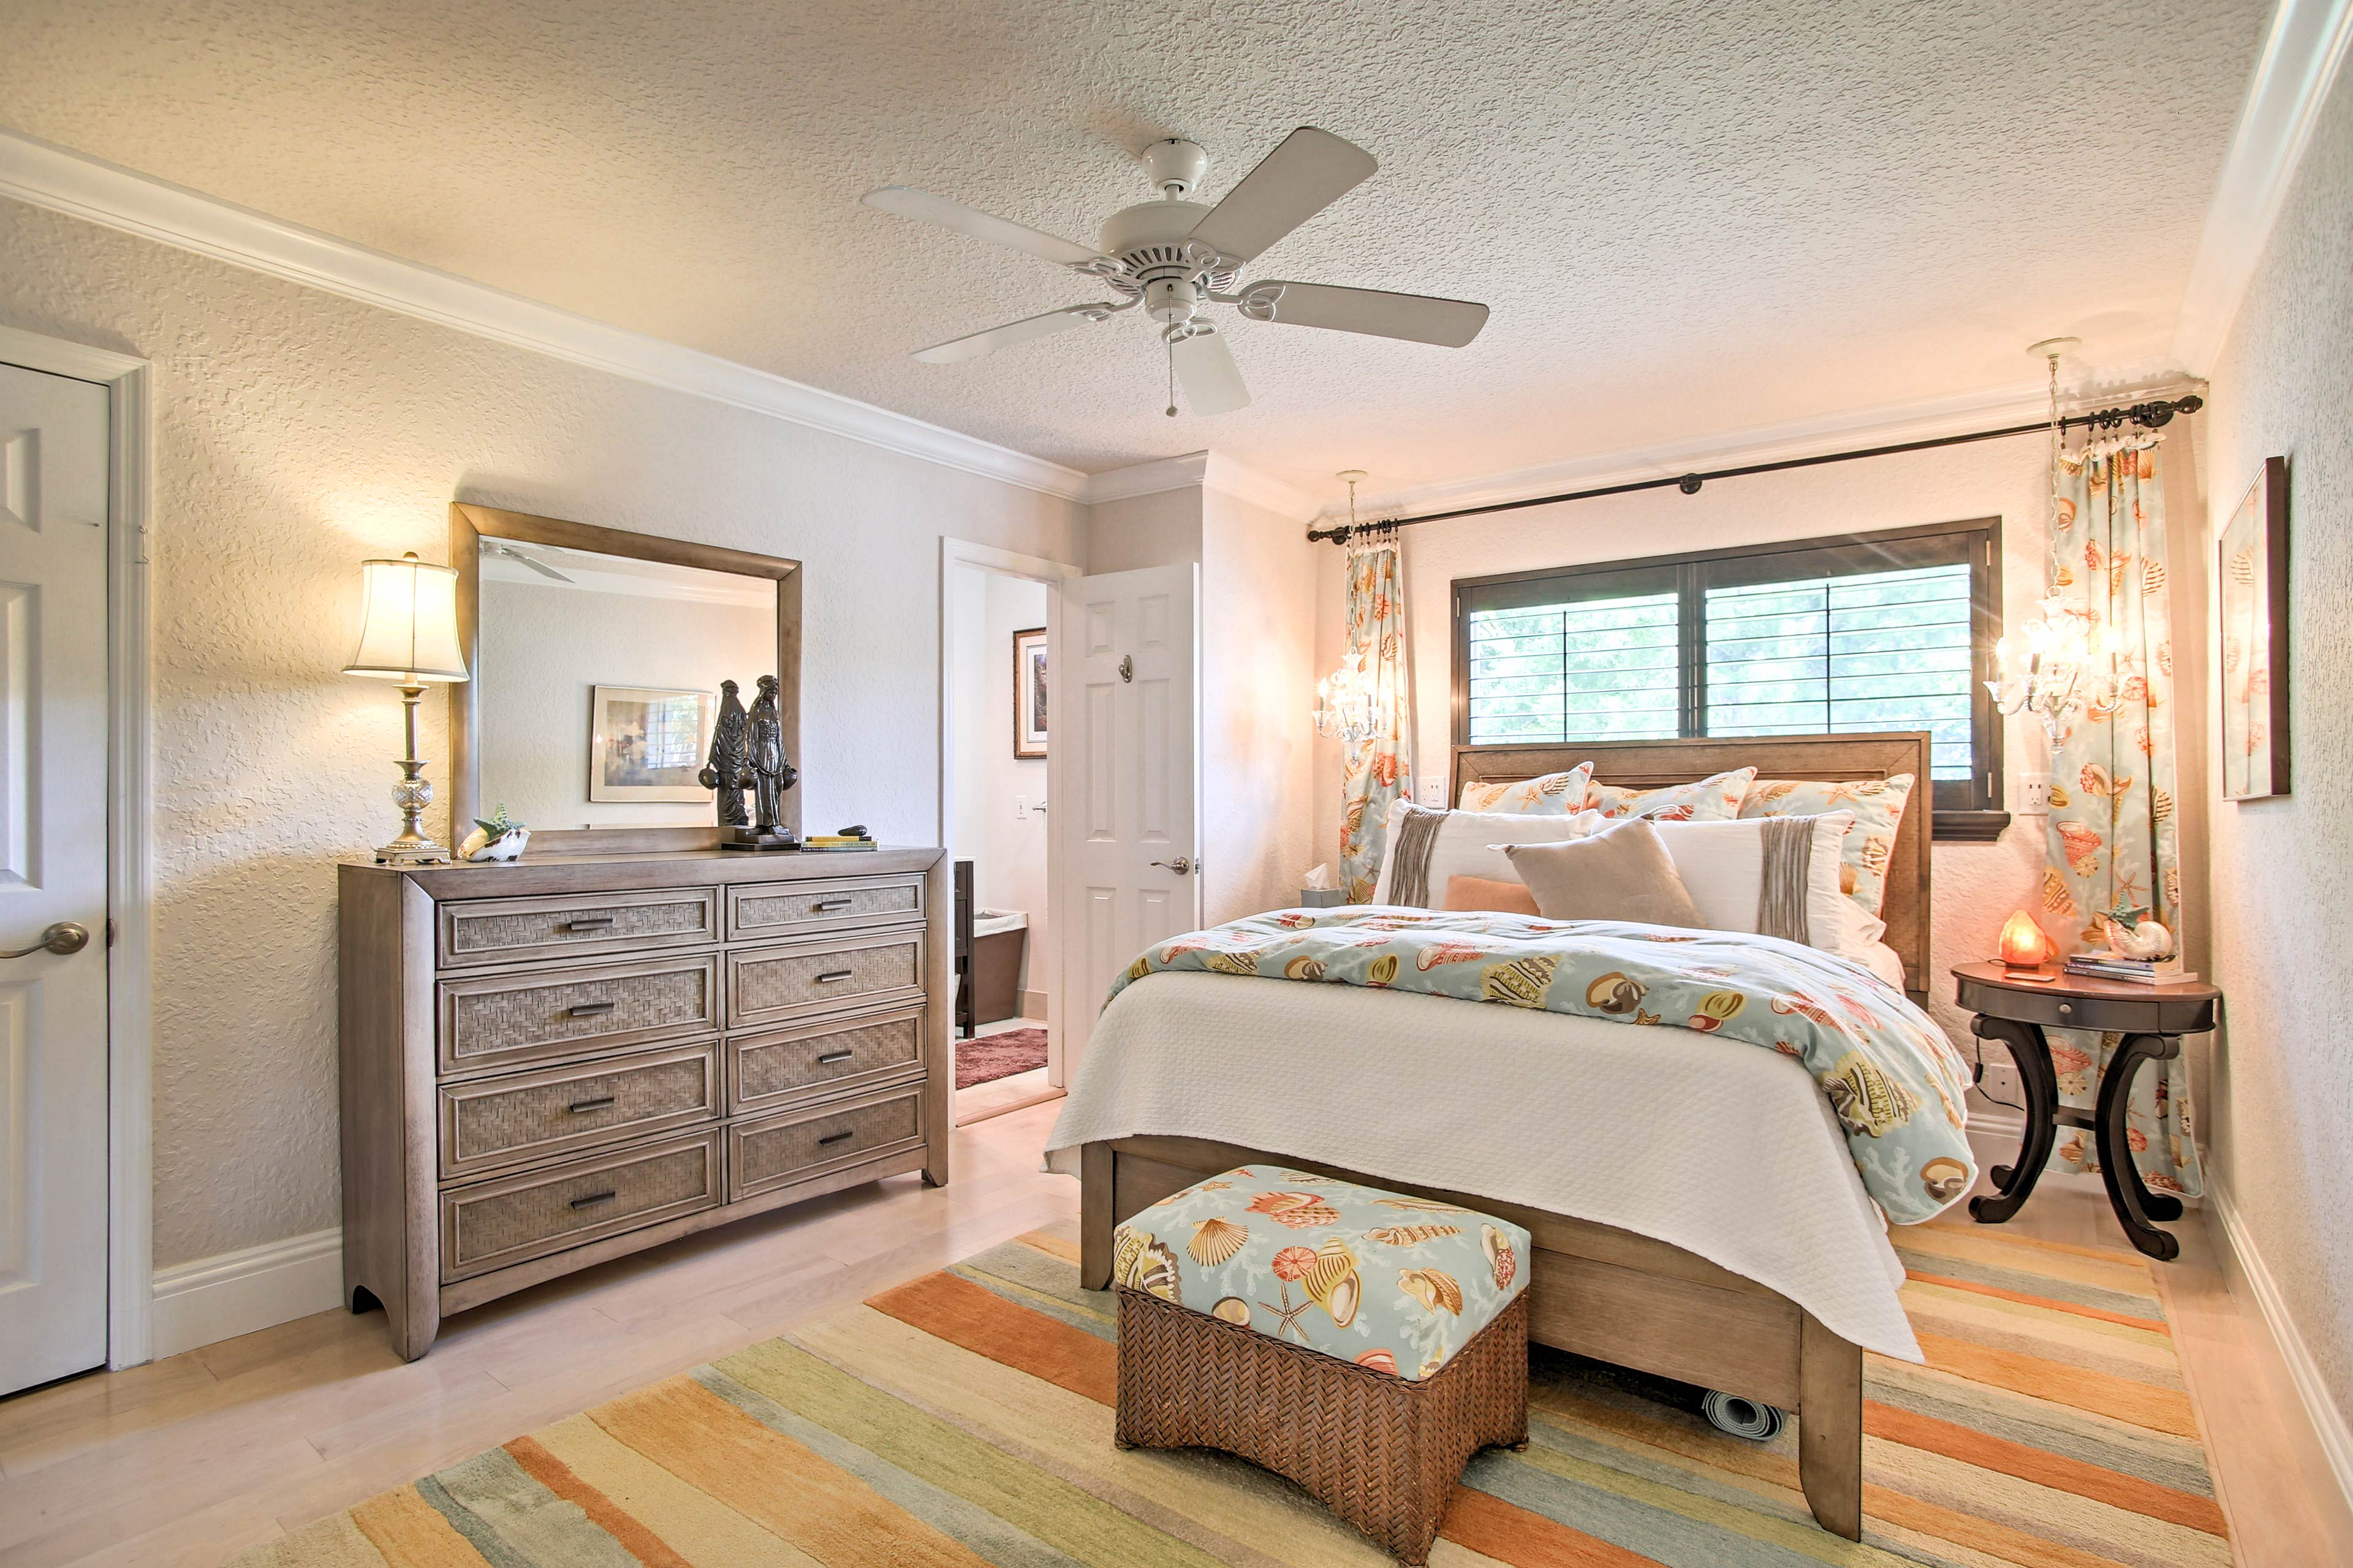 Retreat to the master bedroom for a sound night's sleep in the queen bed.